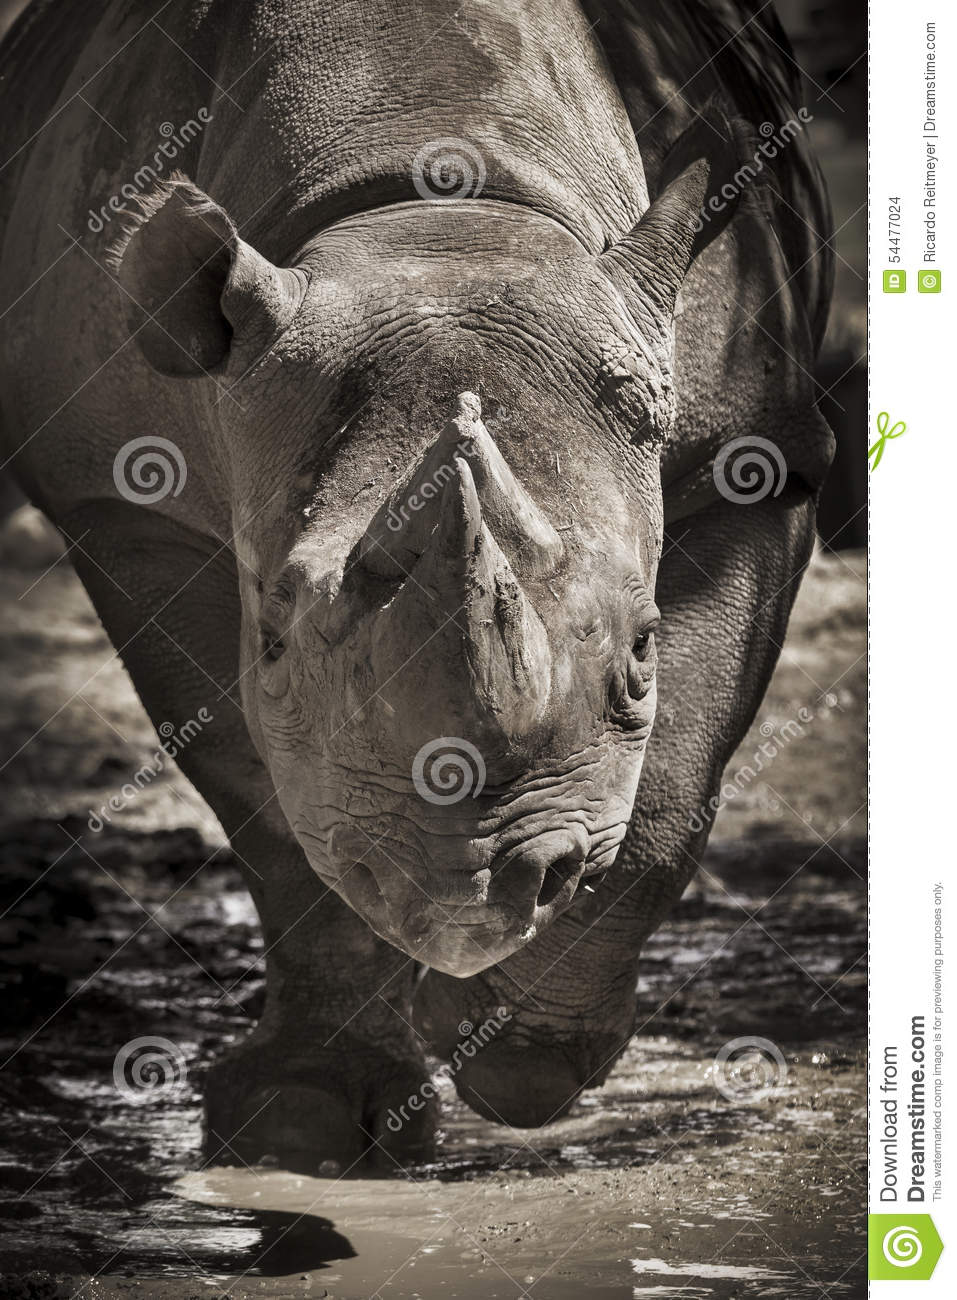 Large Endangered Black Rhino Charges Towards The Camera At Local Zoo